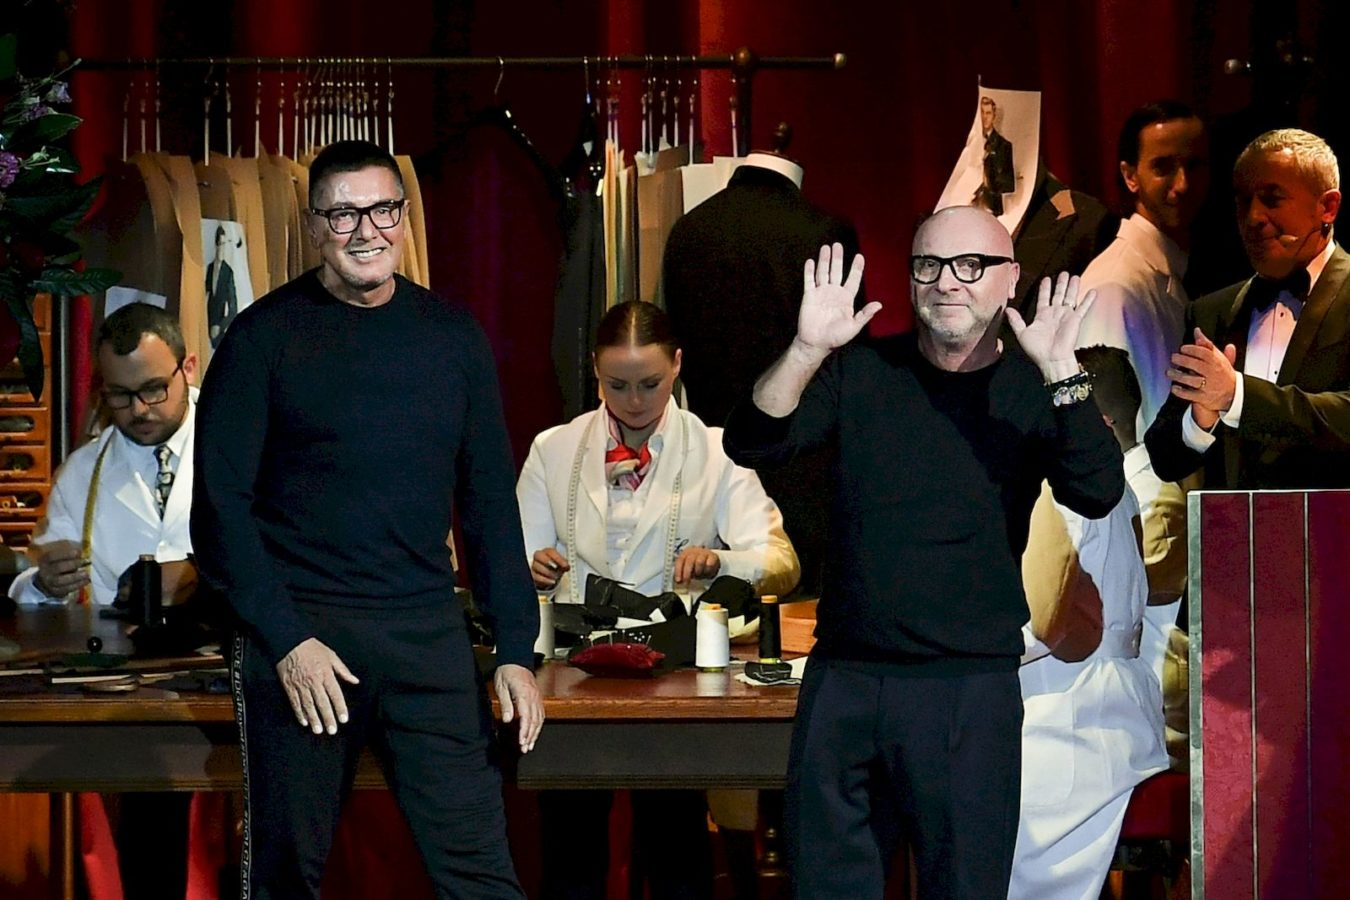 Dolce & Gabbana is confirmed for the first ever Milano Digital Fashion Week